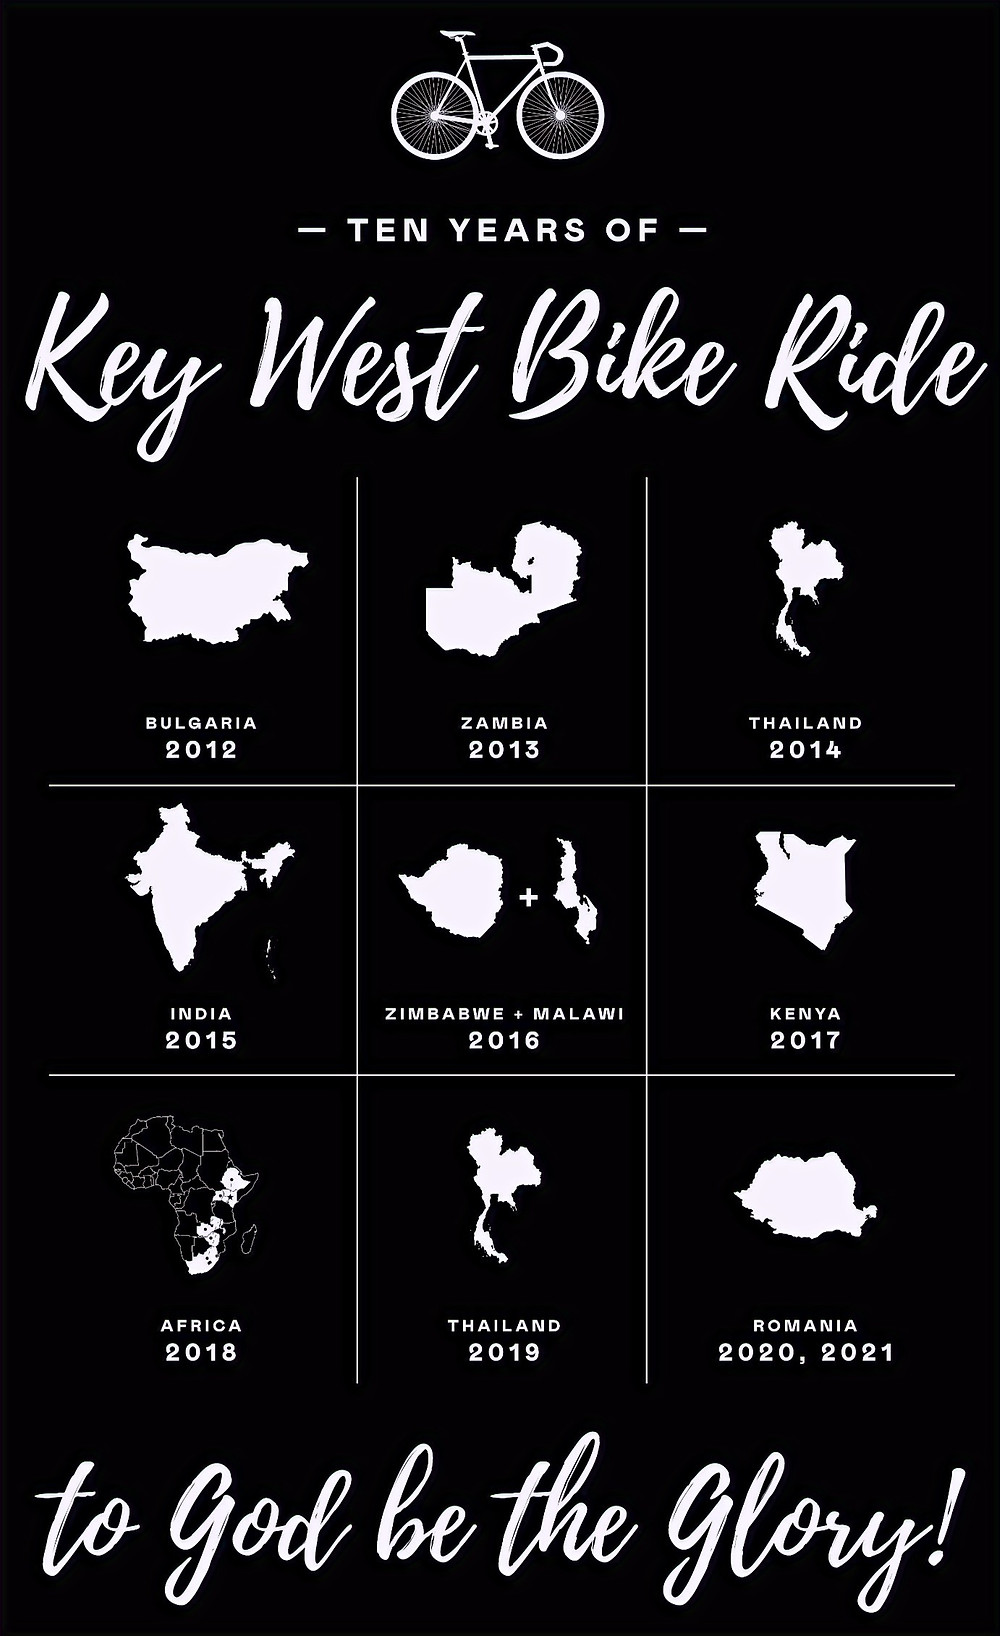 Ends of the Earth Cycling - 10 Years of the Key West Bike Ride